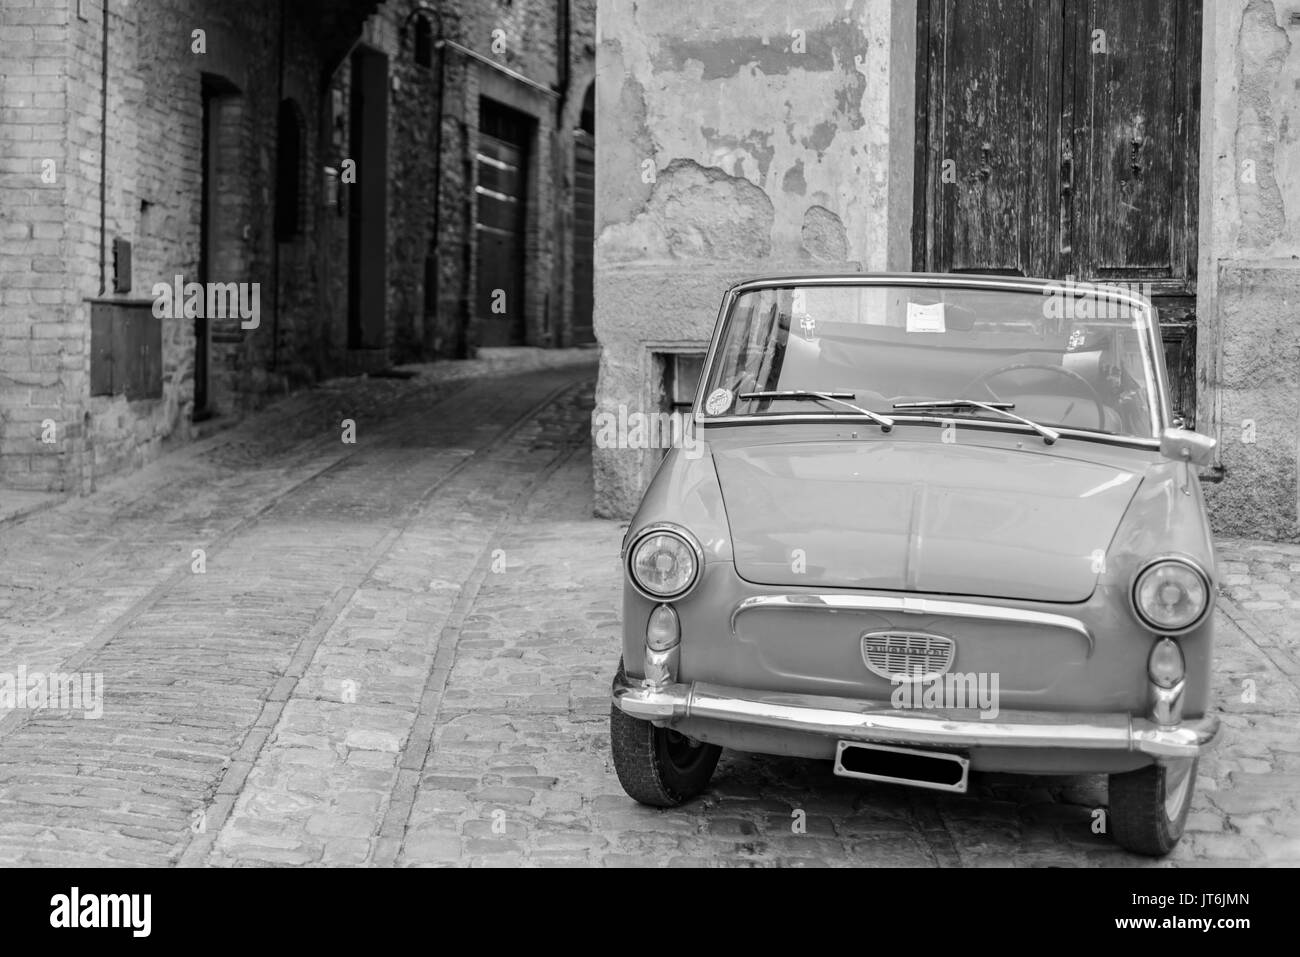 An italian vintage car parked in a street of the historical center of Spello in Umbria - Stock Image